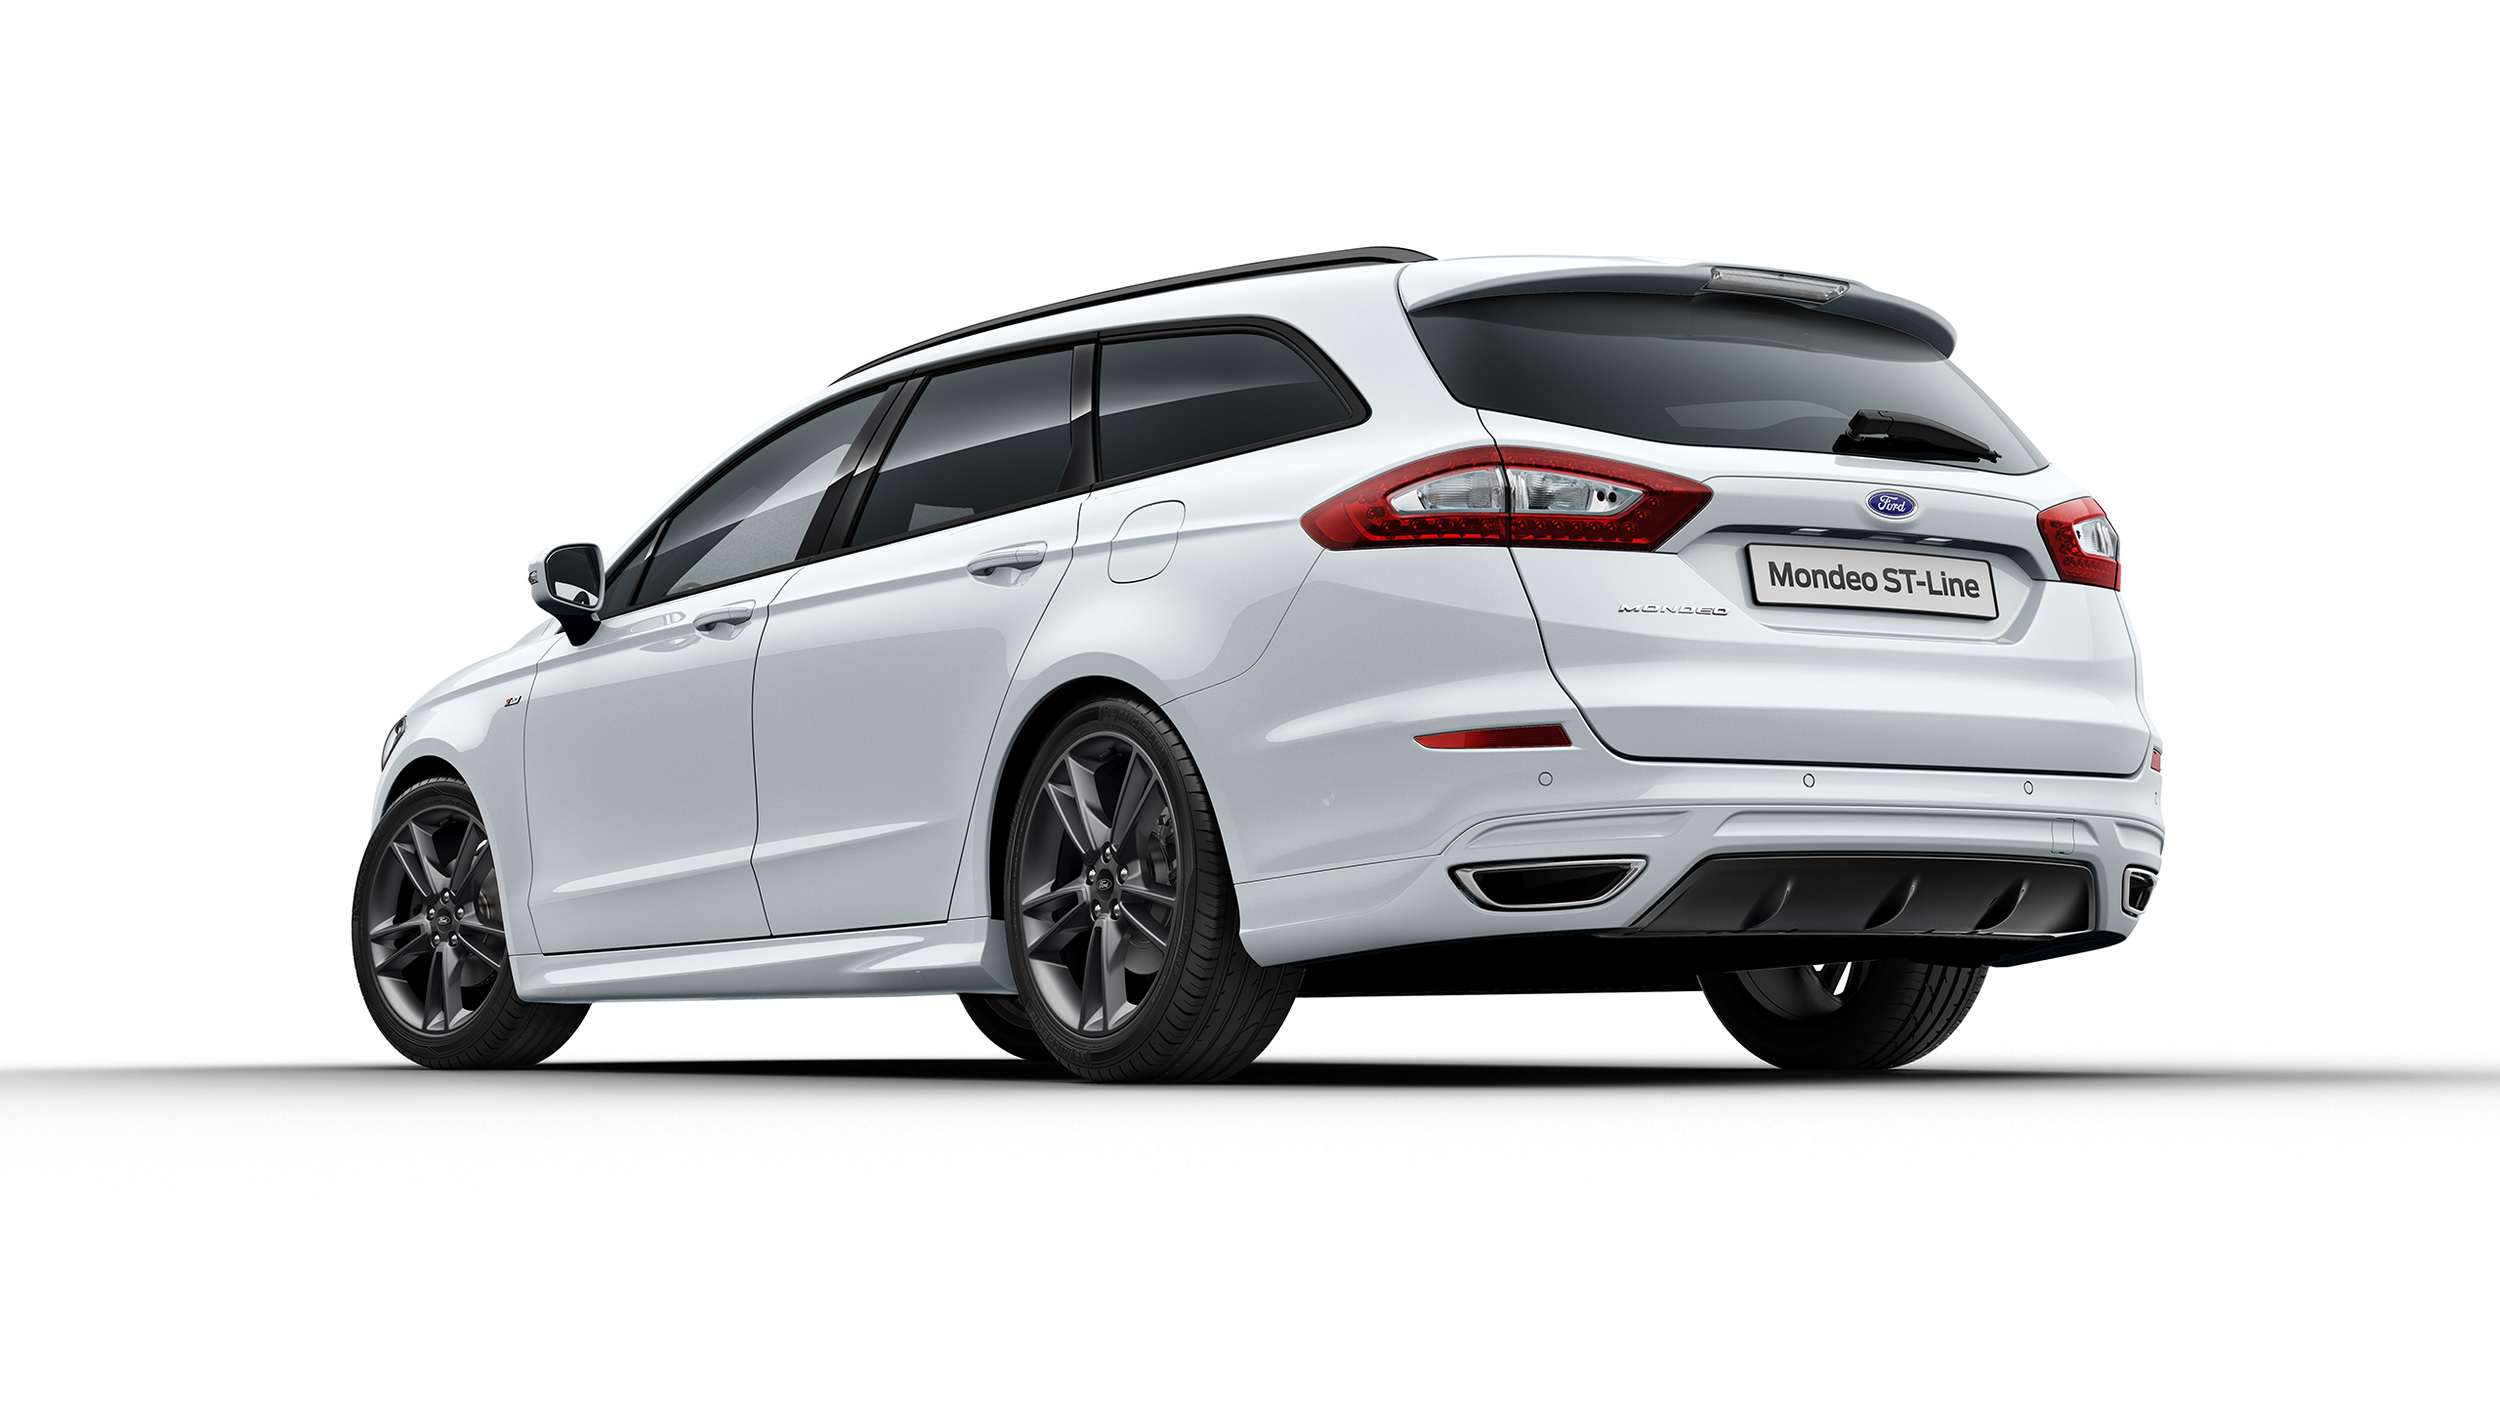 Engine options include 150PS and 180PS 2.0-litre TDCi diesels.jpg